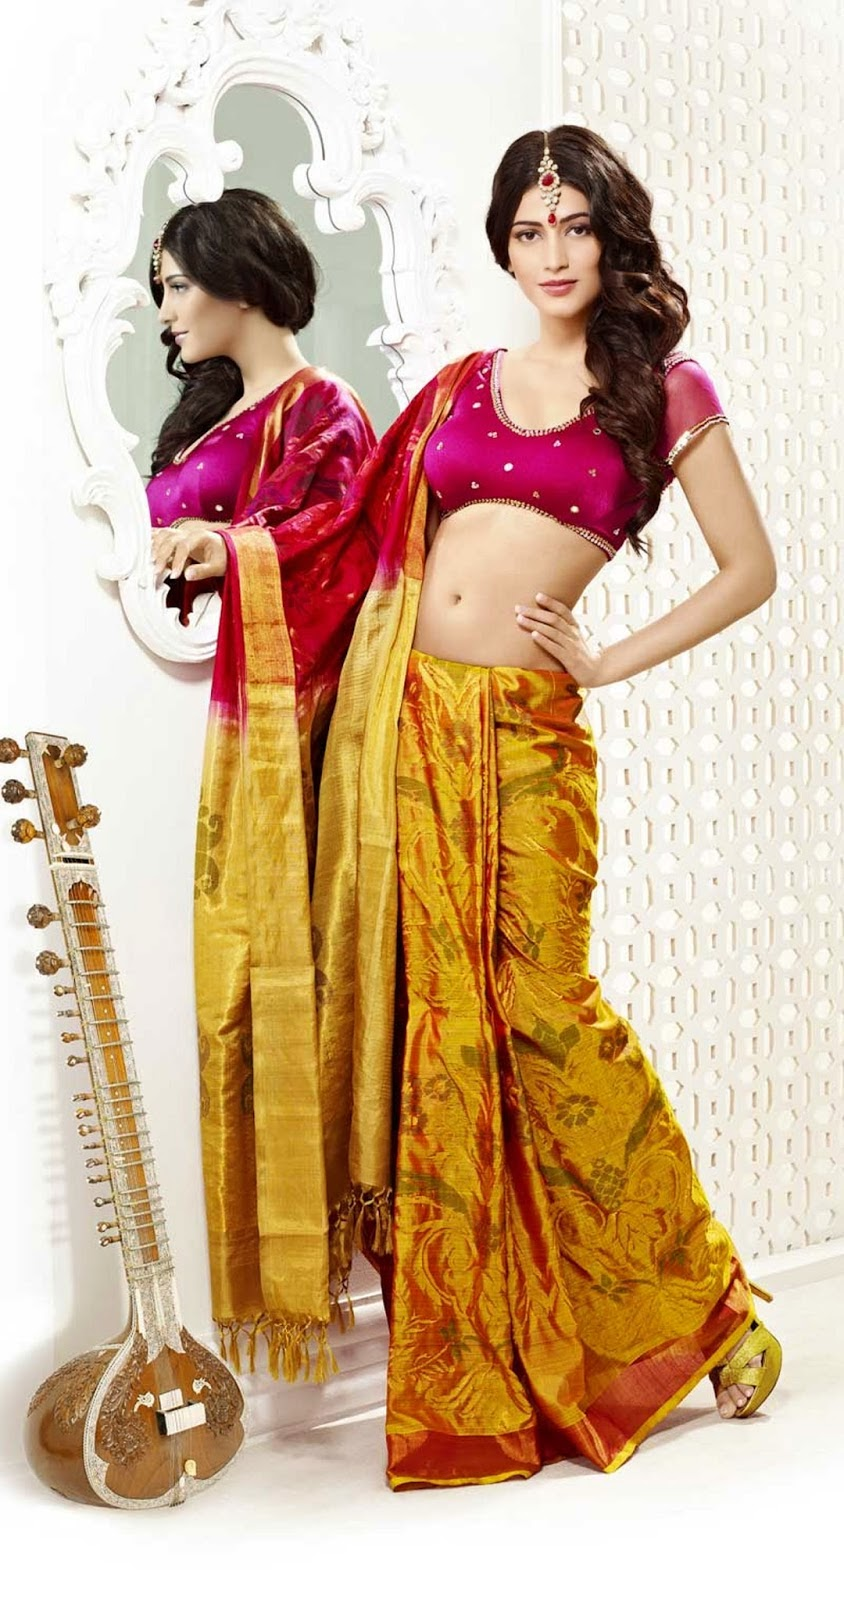 Shruti Haasan Fancy Sarees Photoshoot